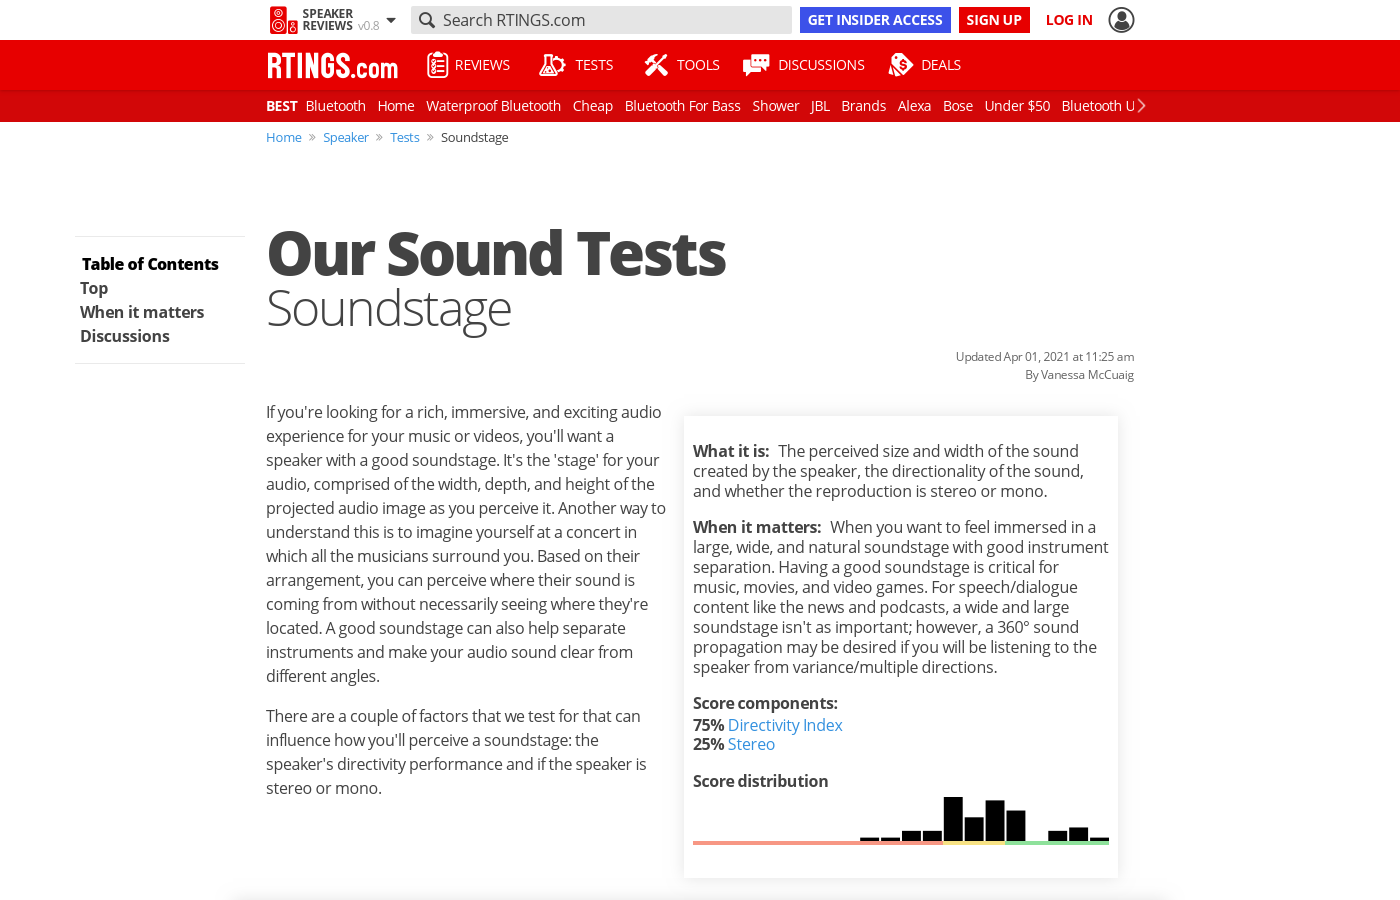 Our Sound Tests: Soundstage